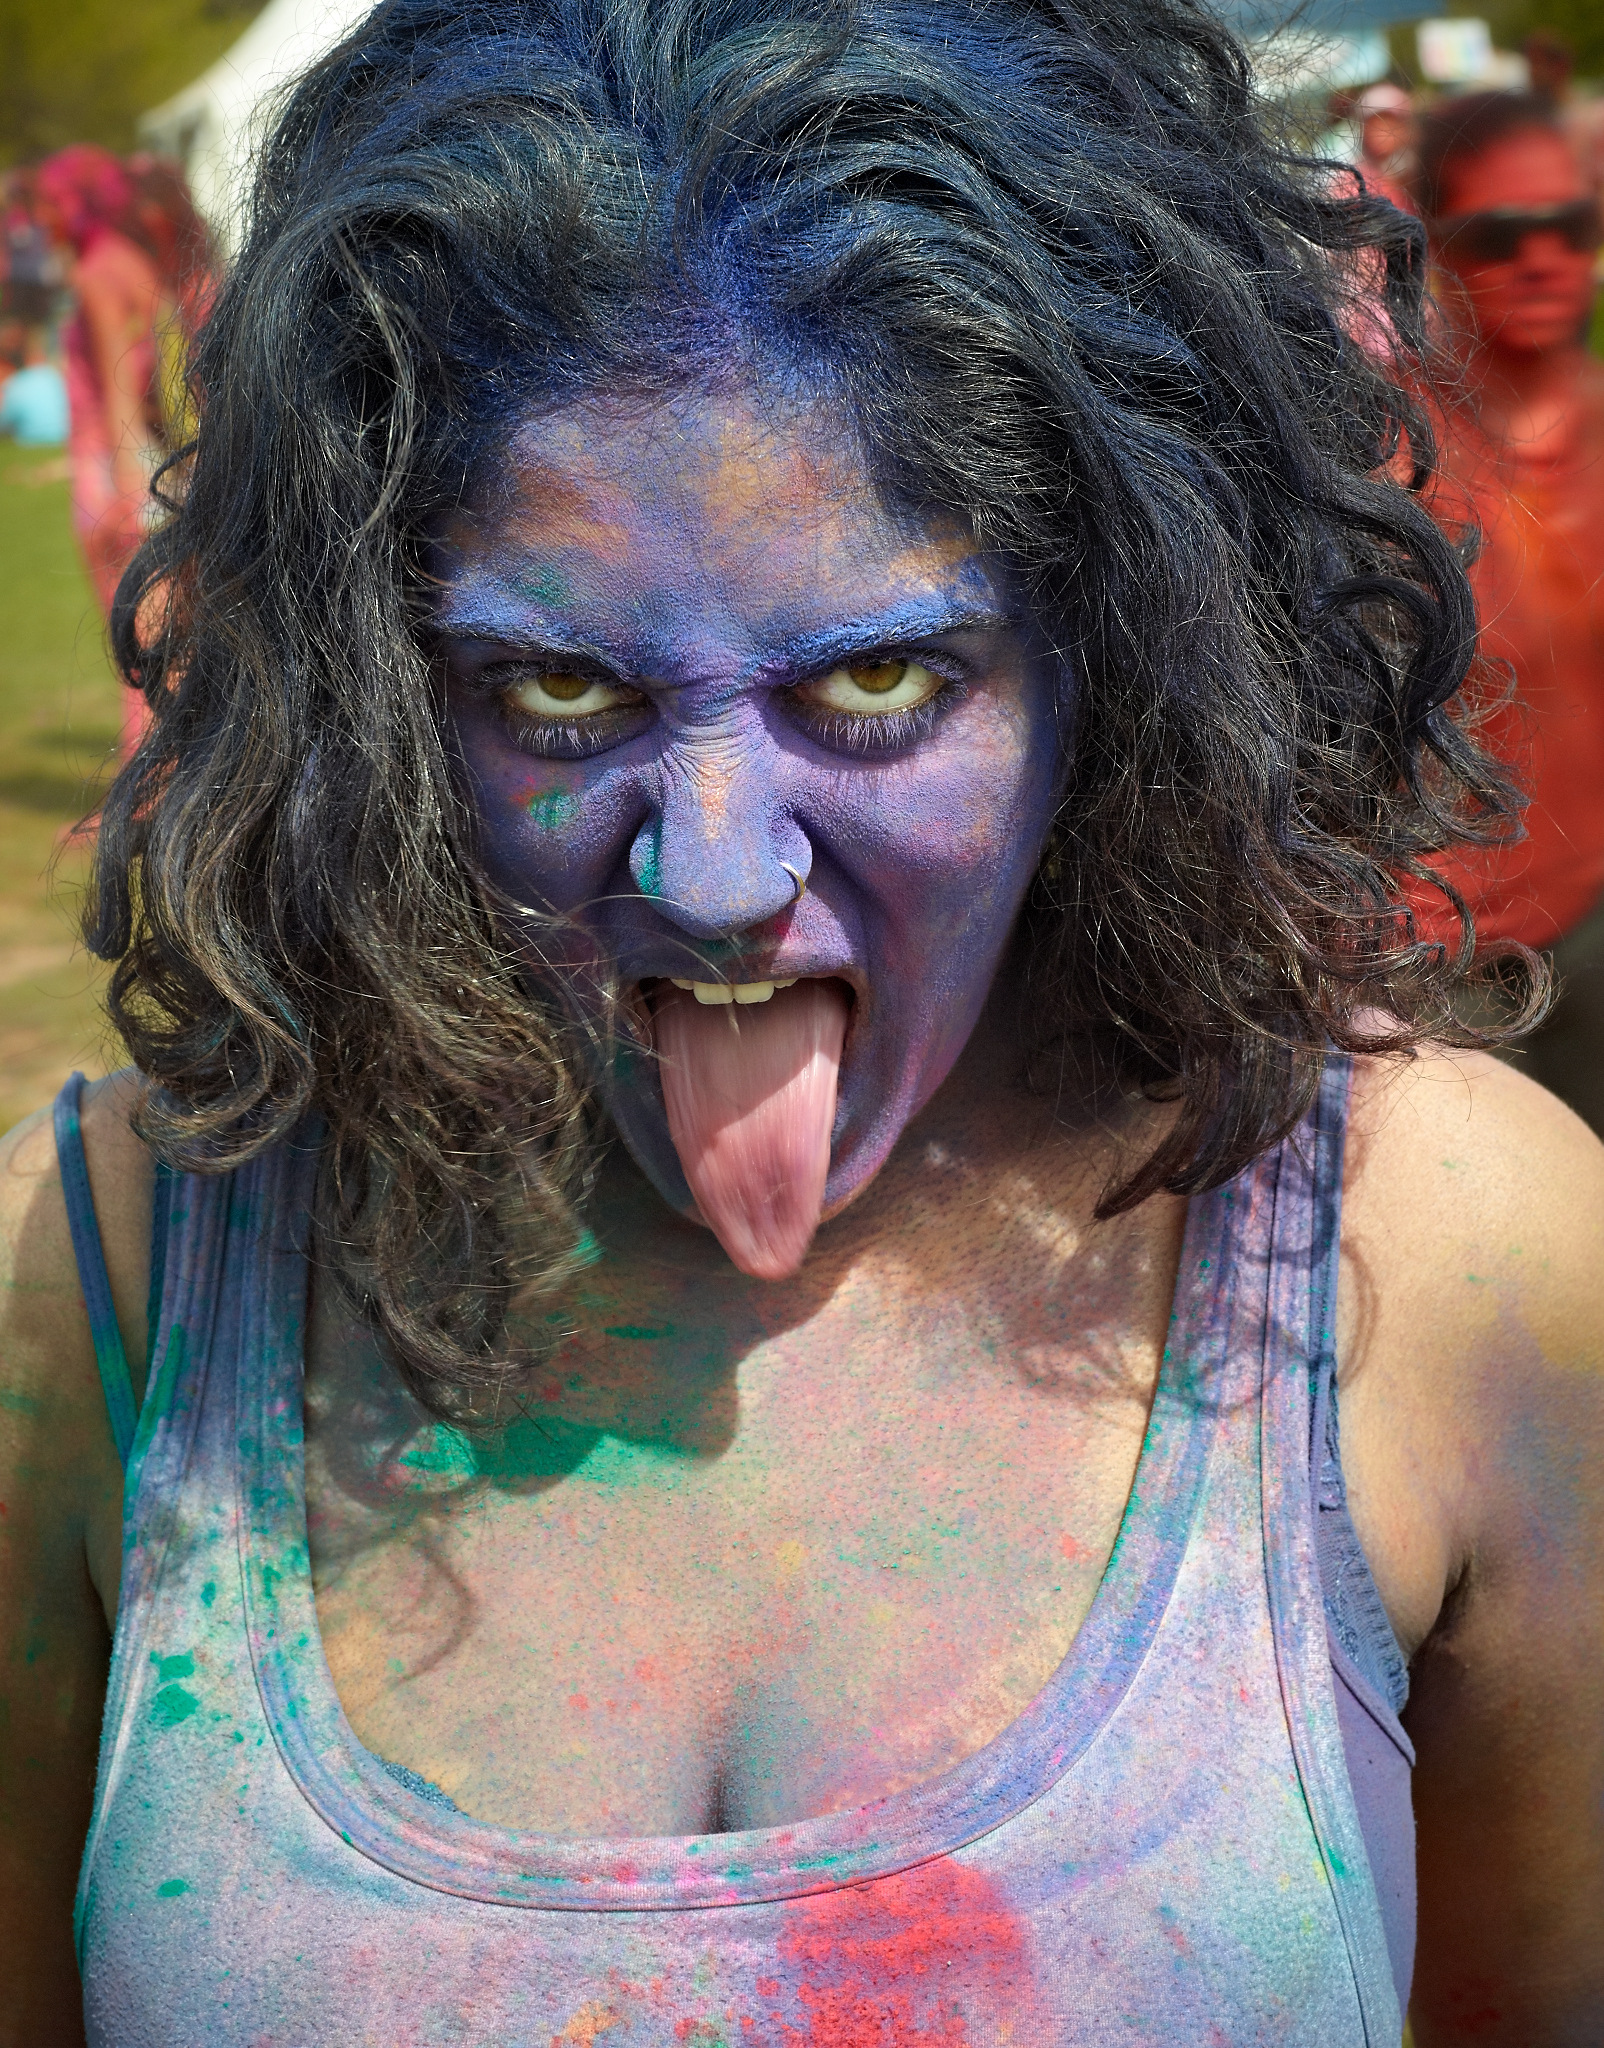 Asha Holi Festival of Colors 2012 by Peter Adams.